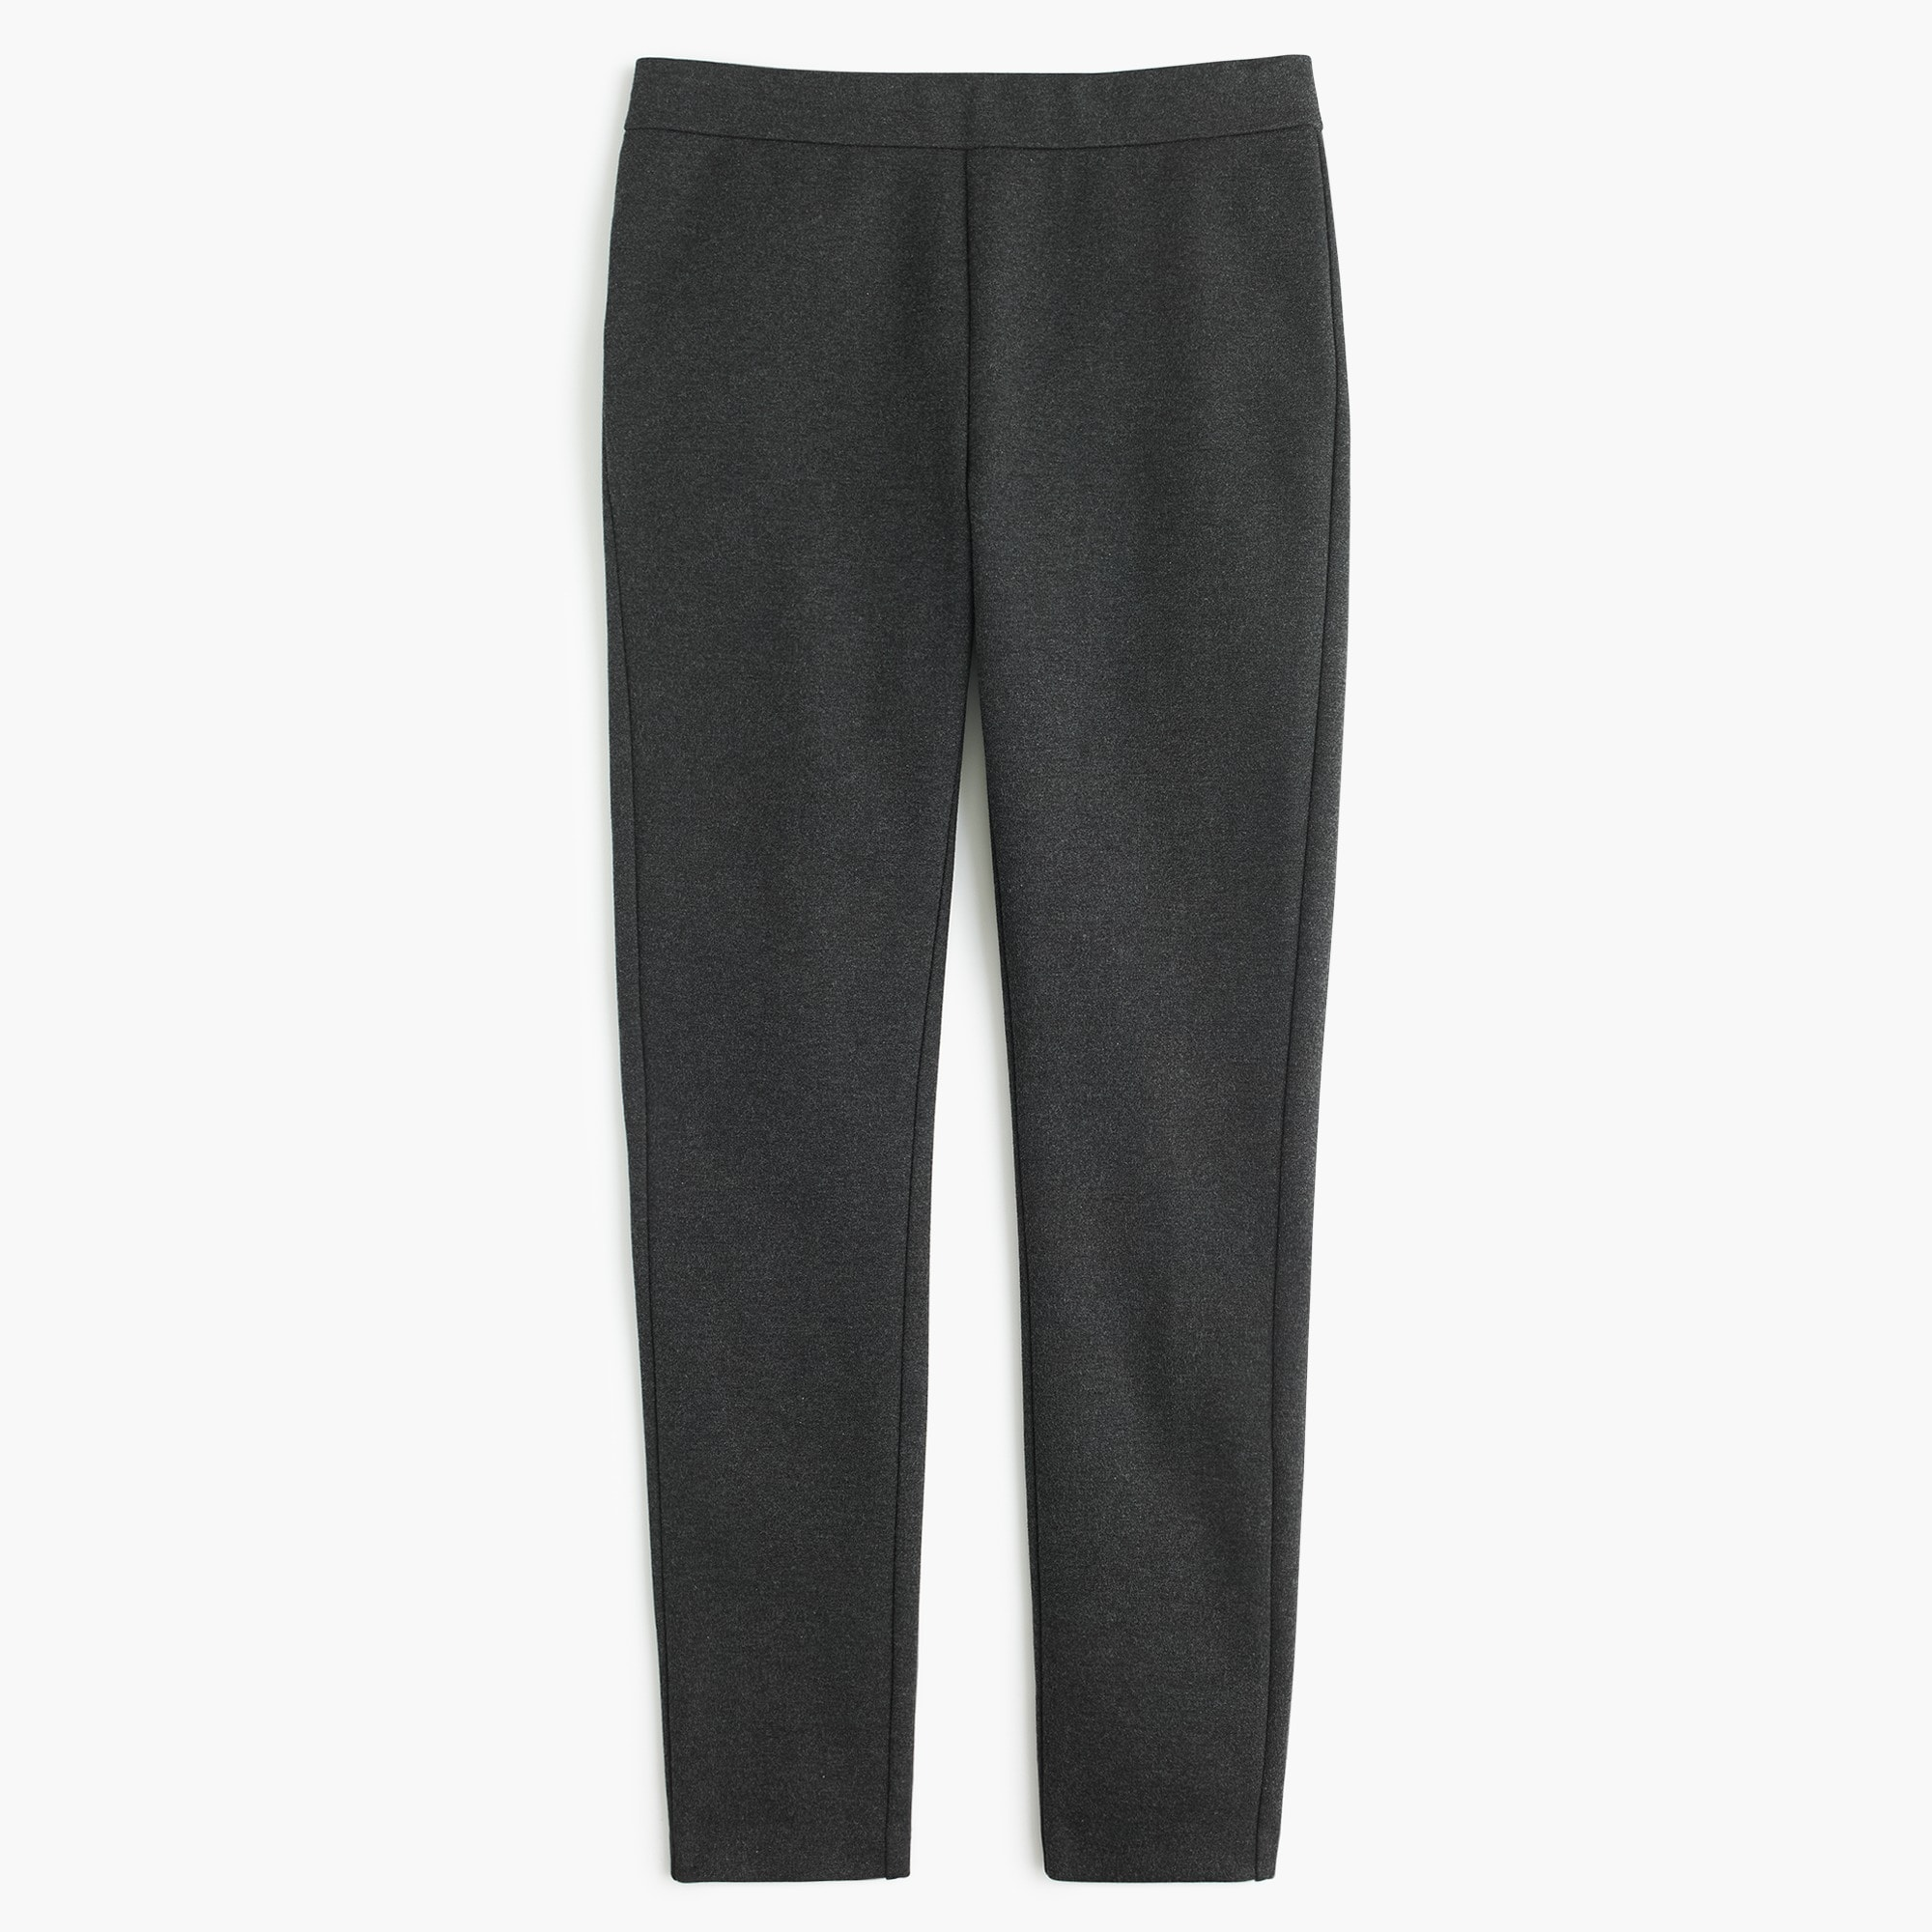 Any day pant in stretch ponte